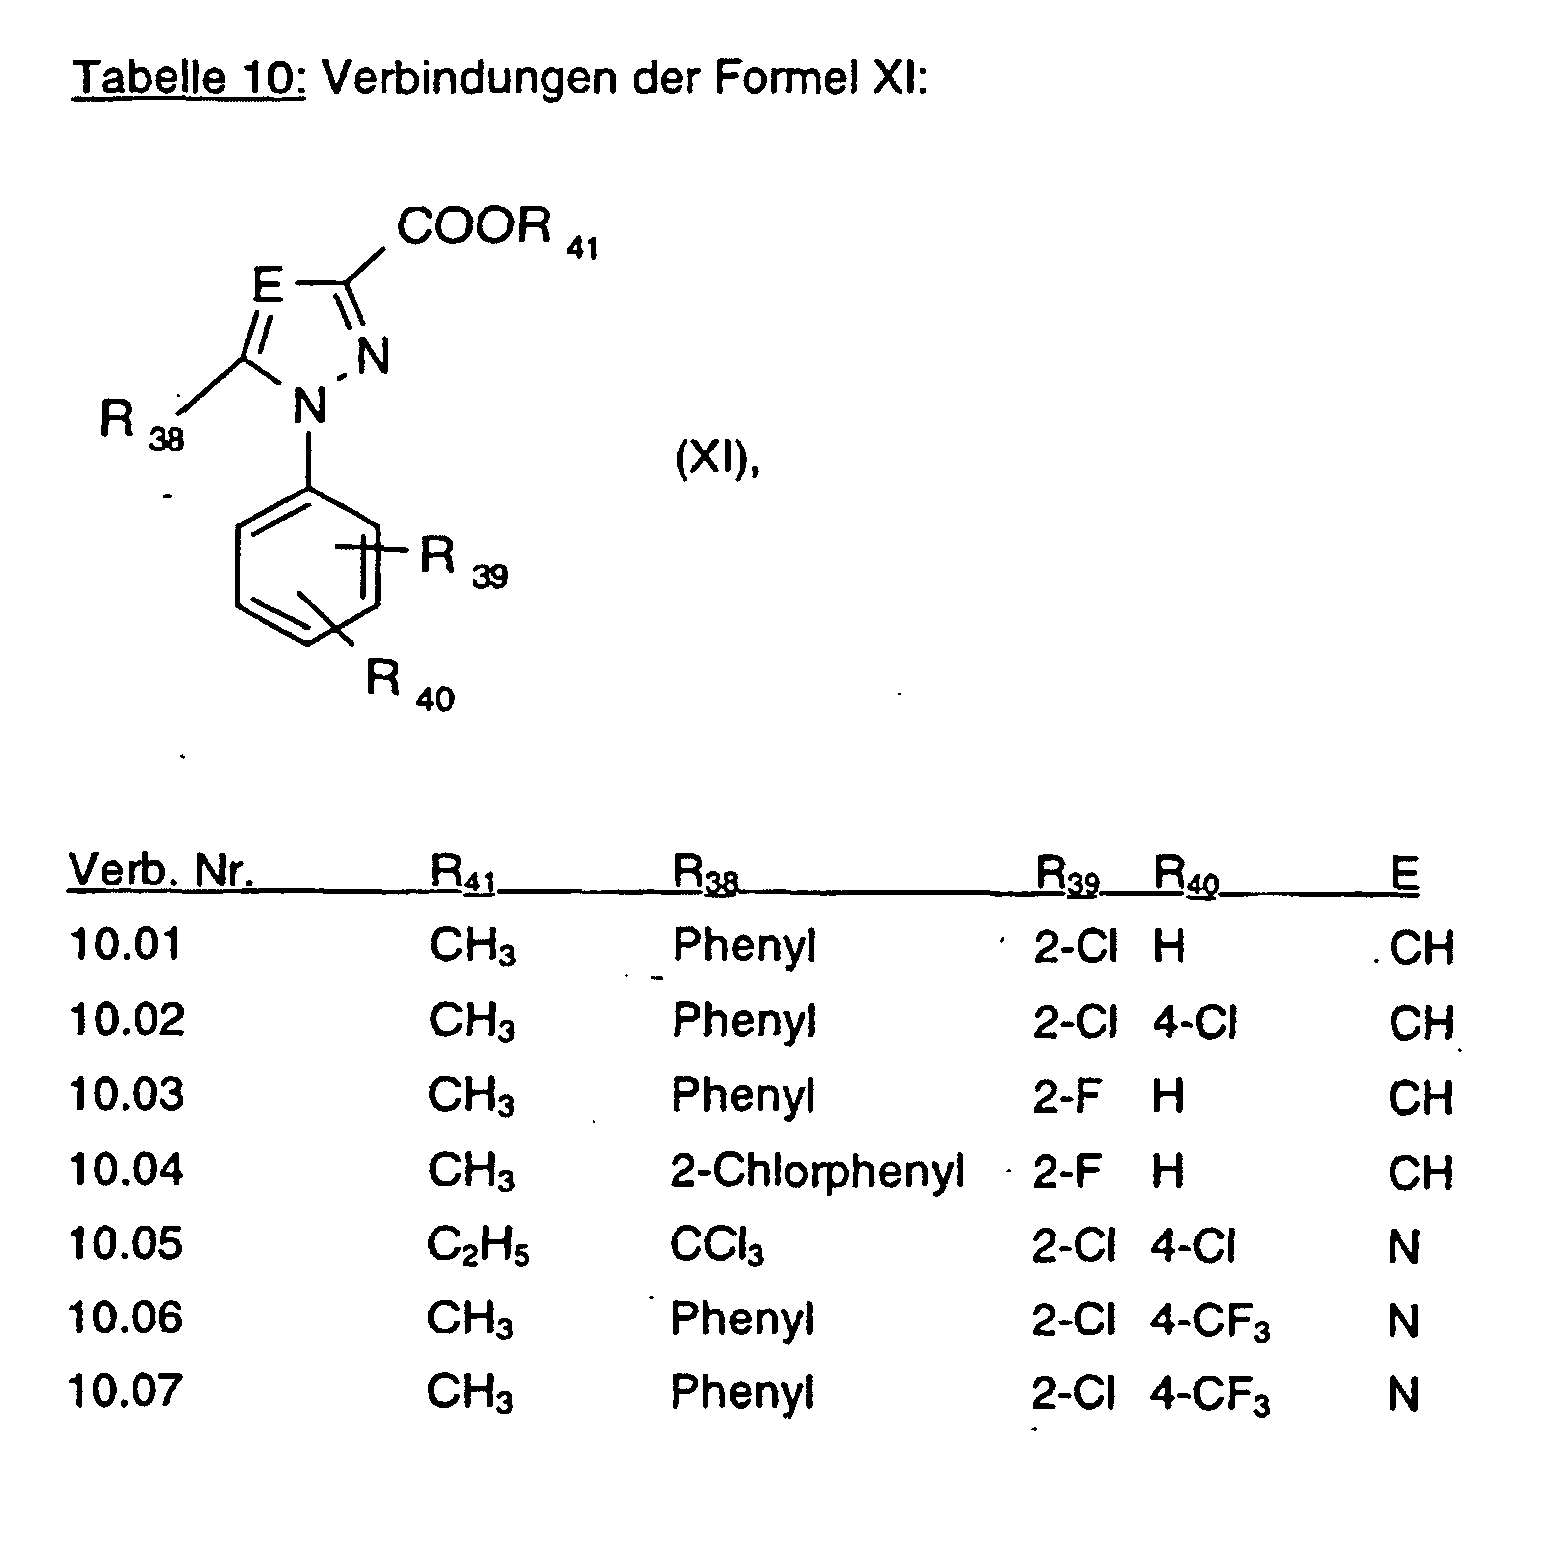 EP1210333B1 - p-Tolyl-heterocycles as herbicides - Google Patents